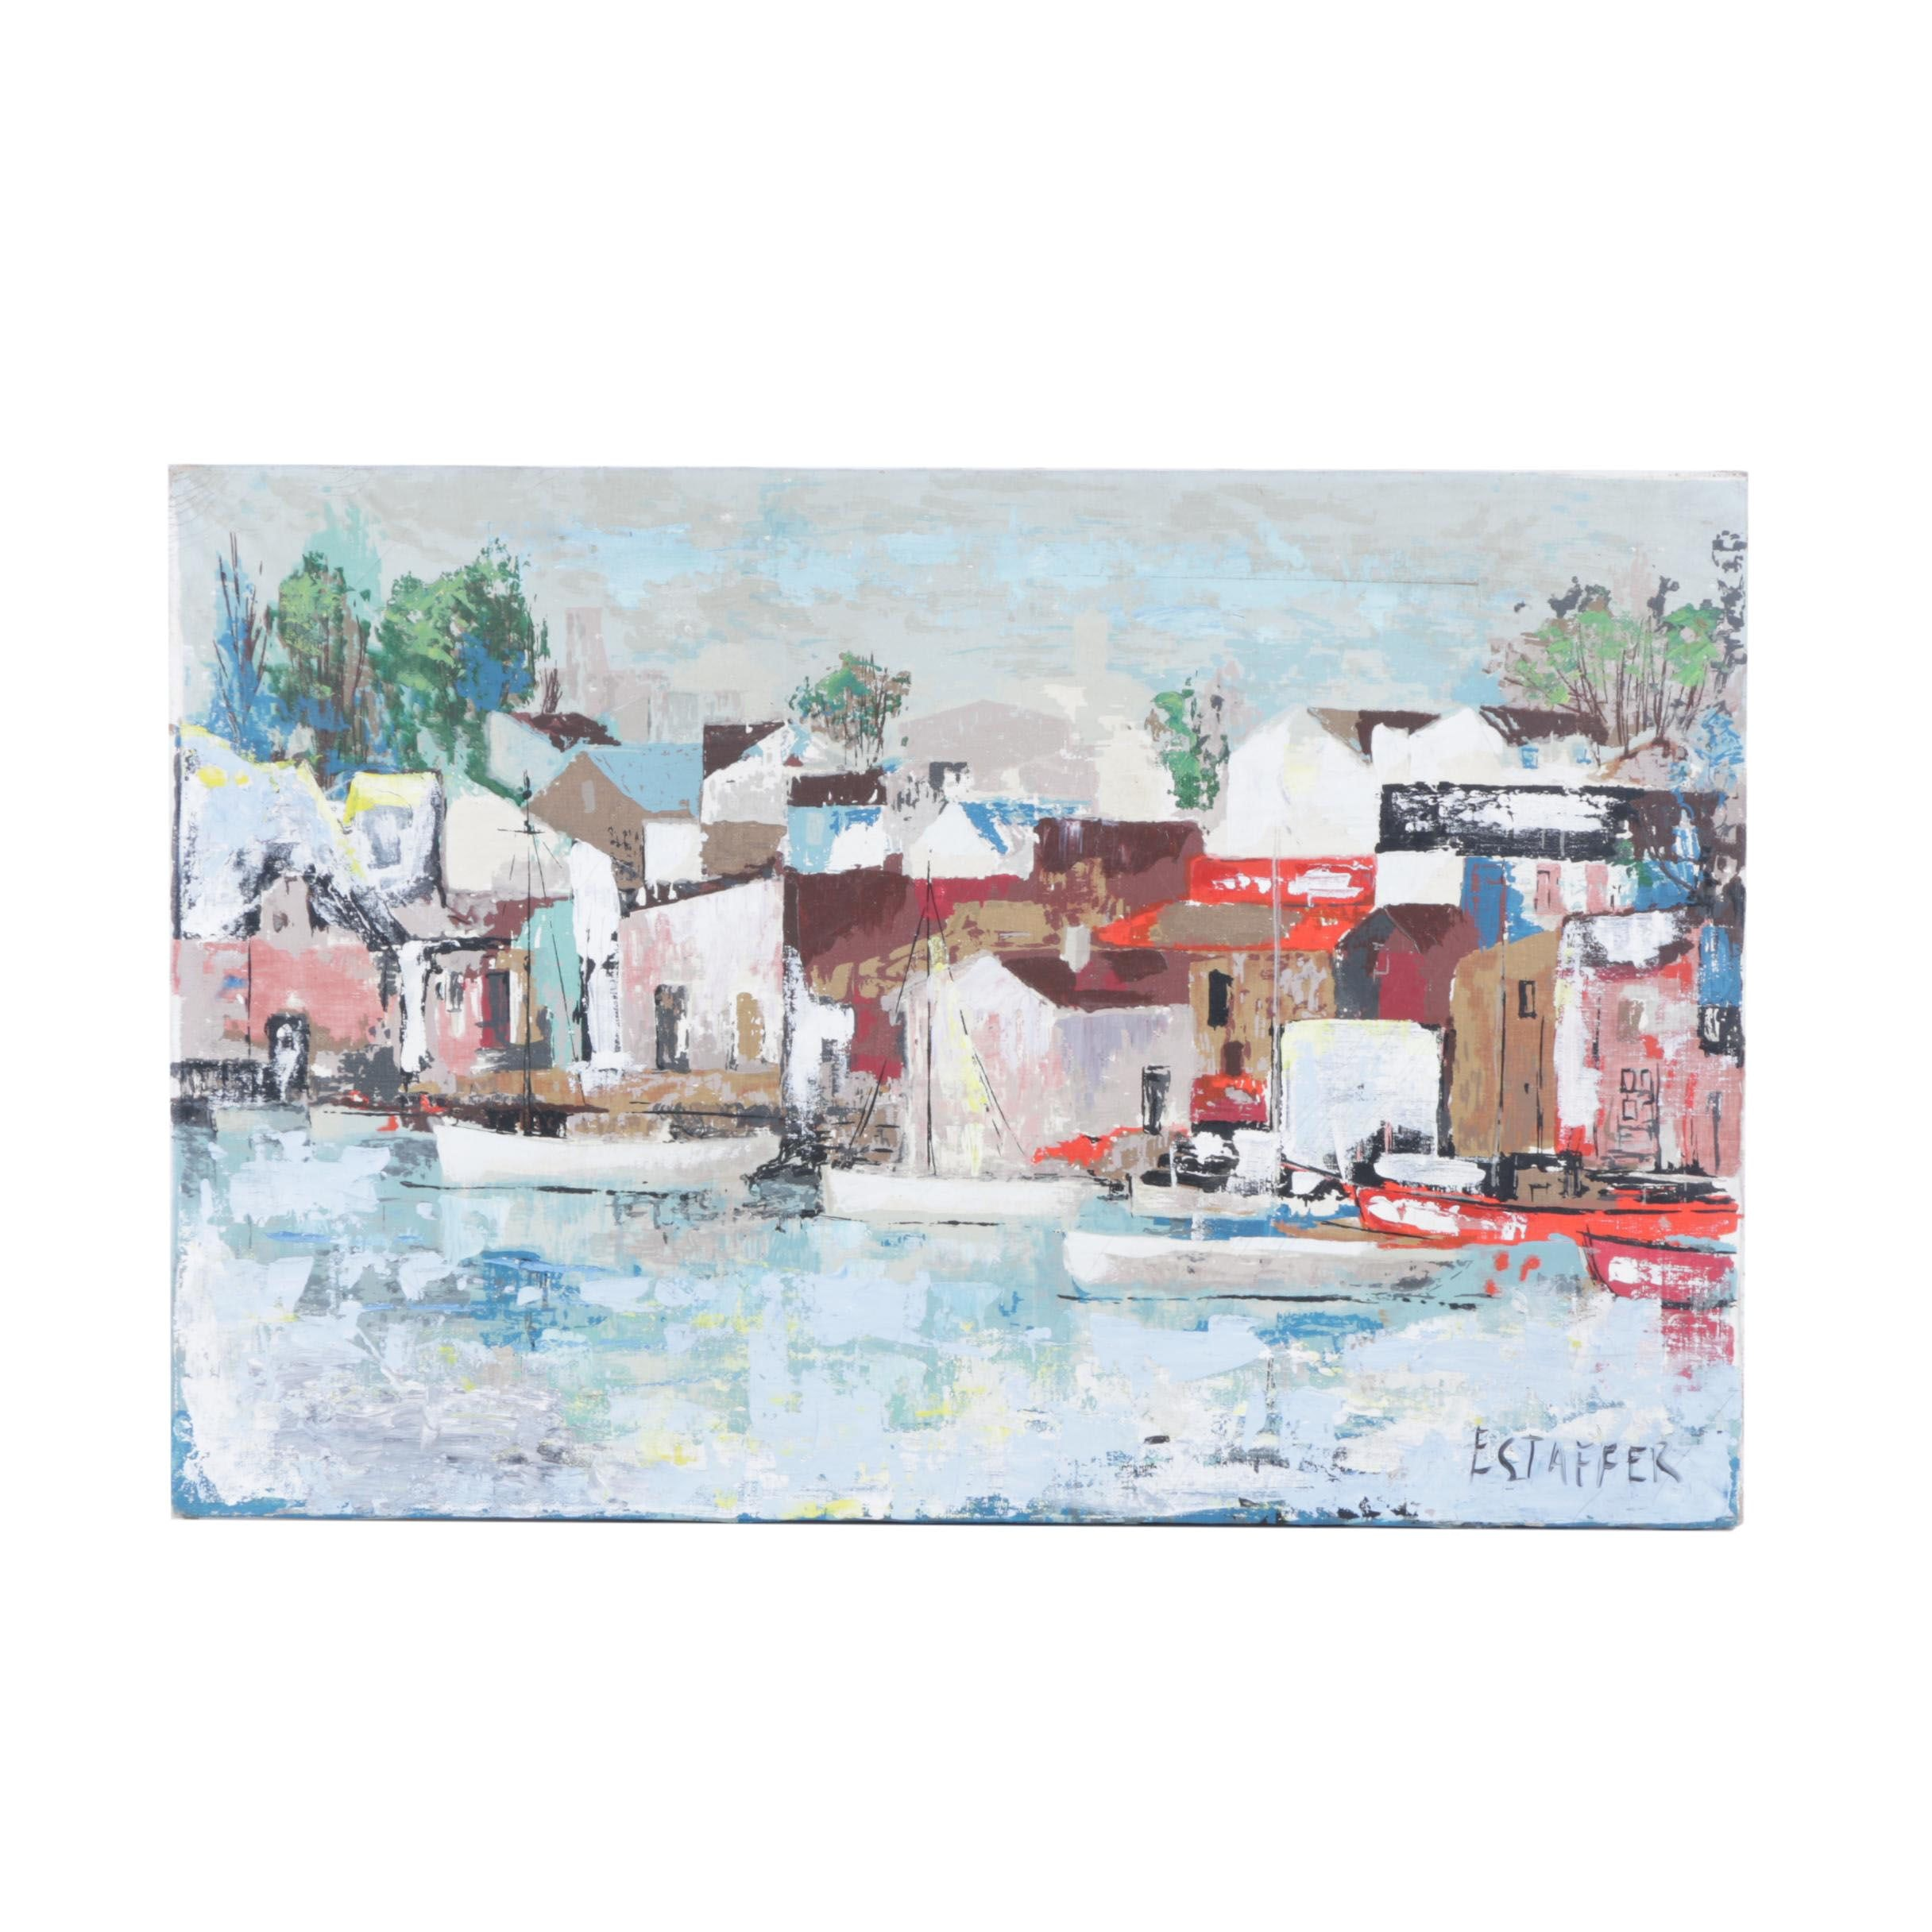 Estaffer Oil Painting on Canvas of Abstract Town Scene